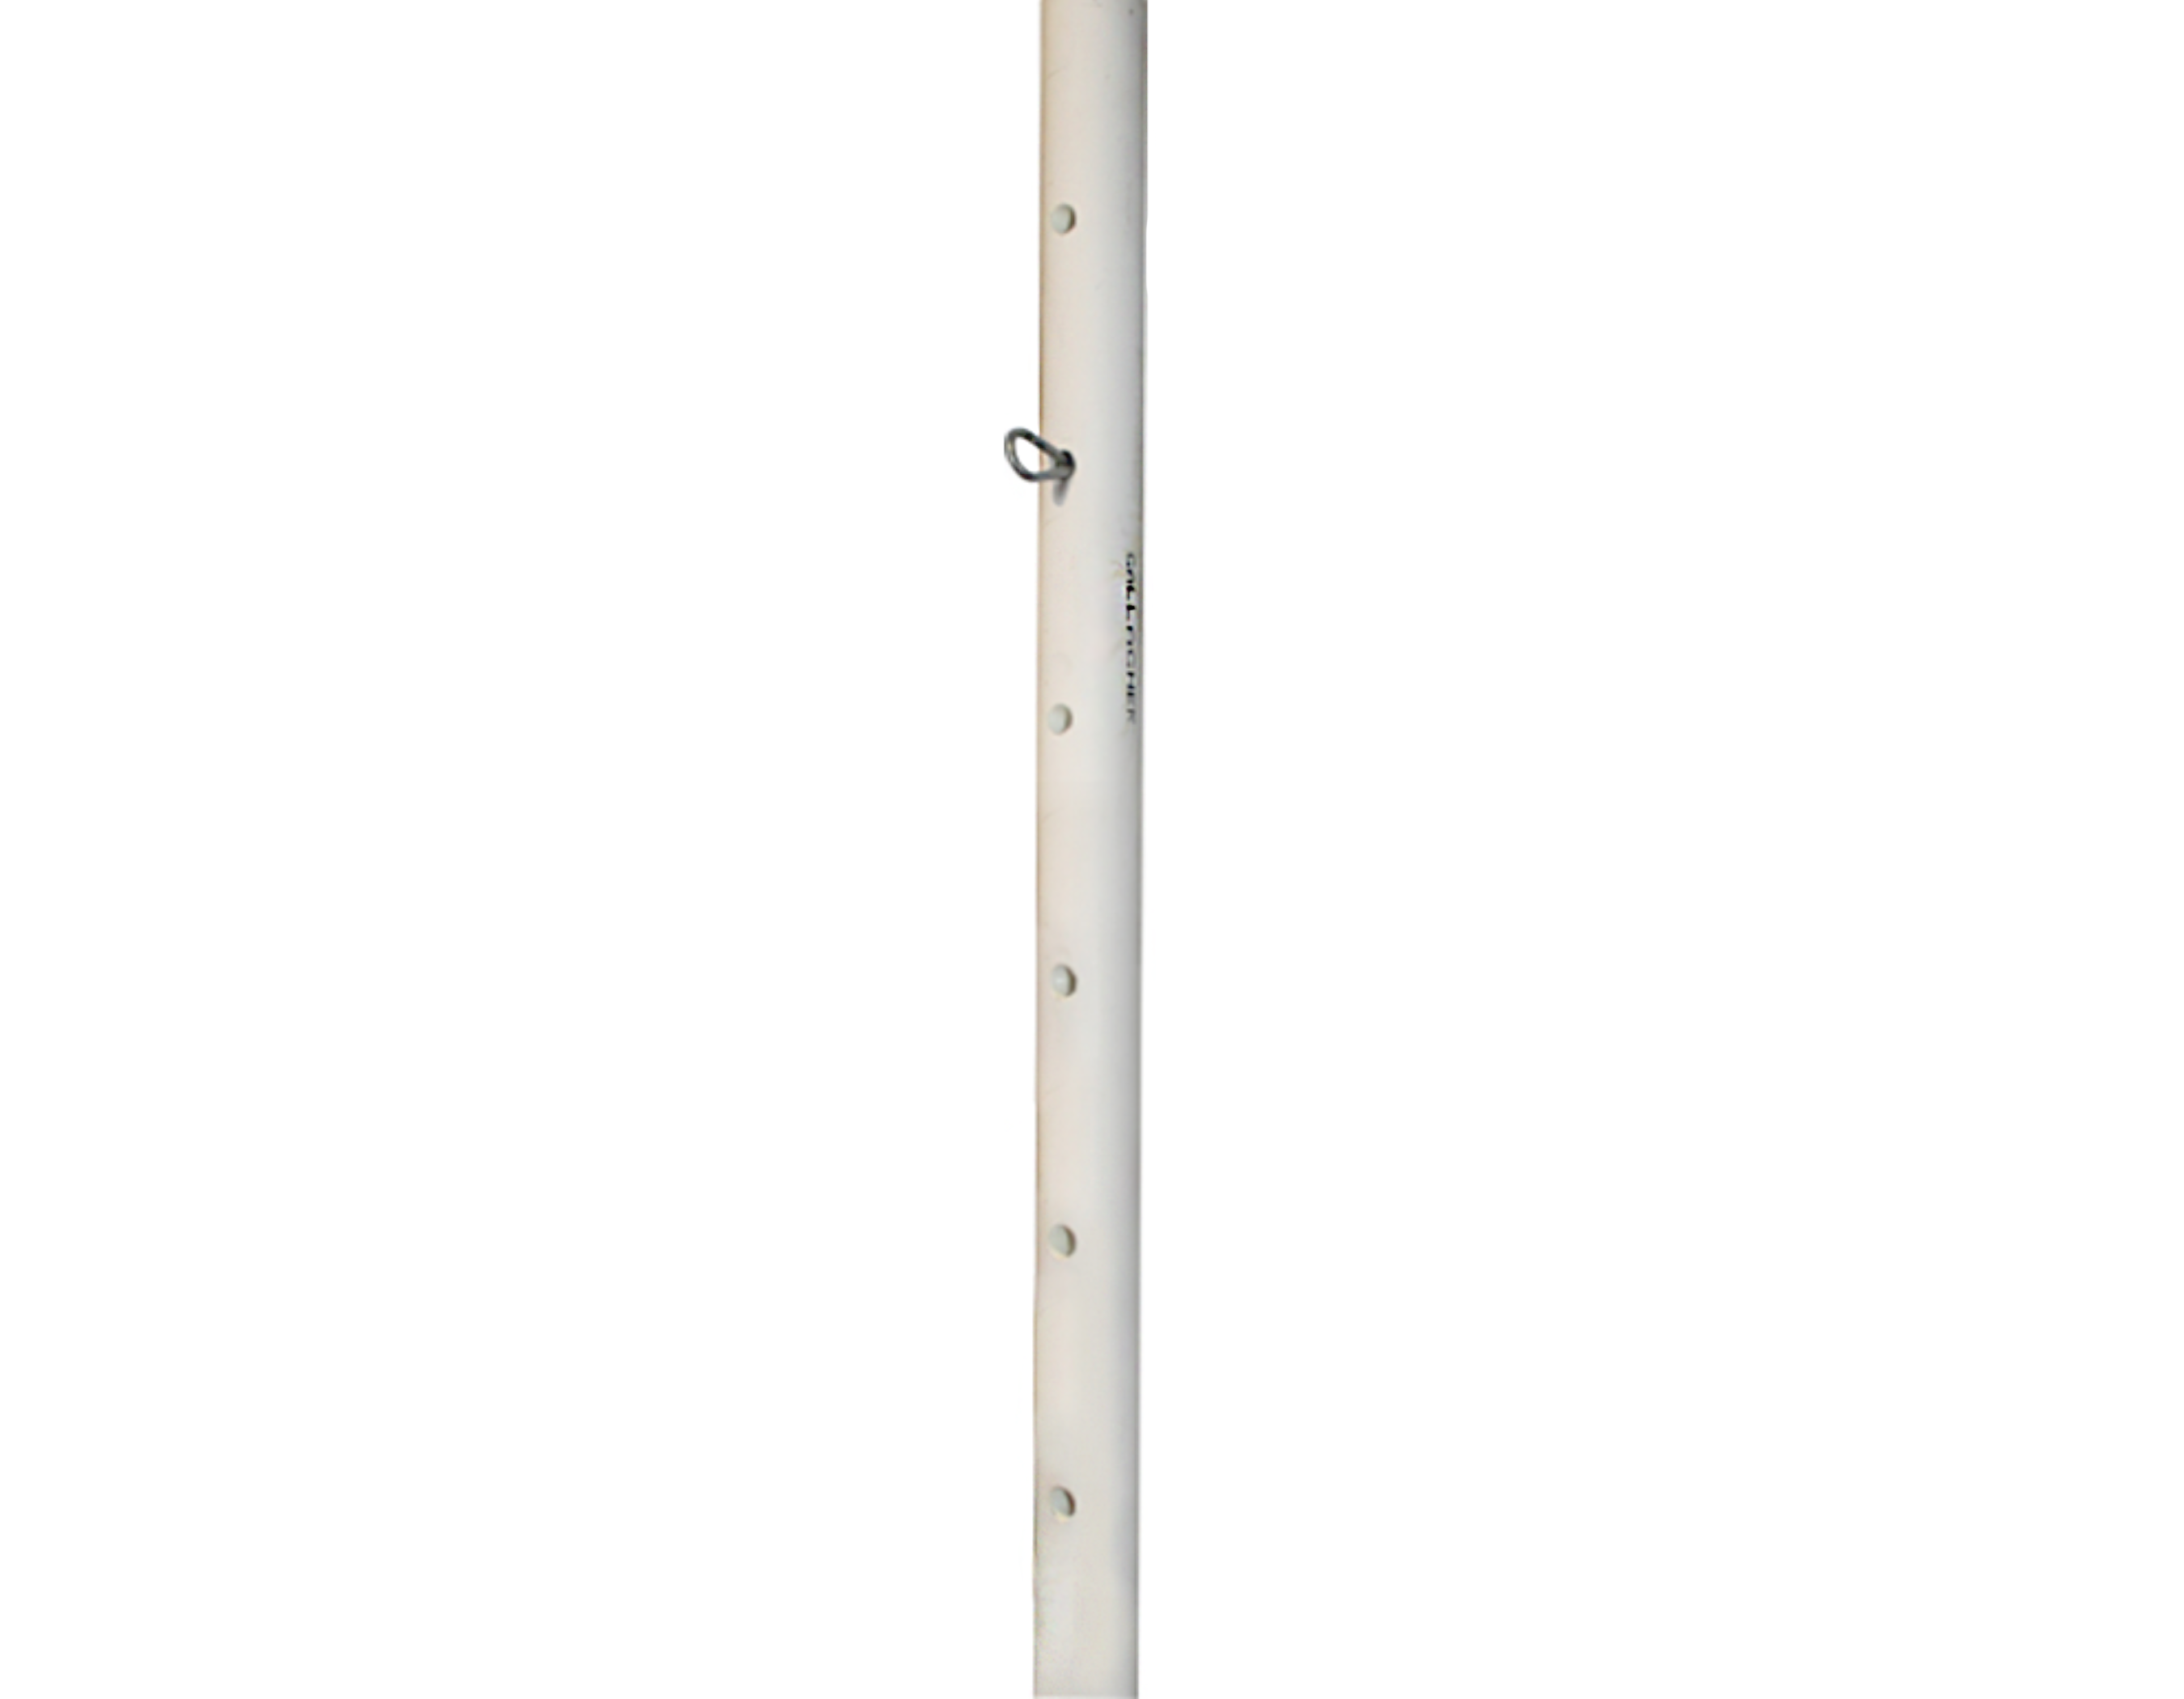 "Gallagher | 7/8"" Fiberglass Rod Posts"